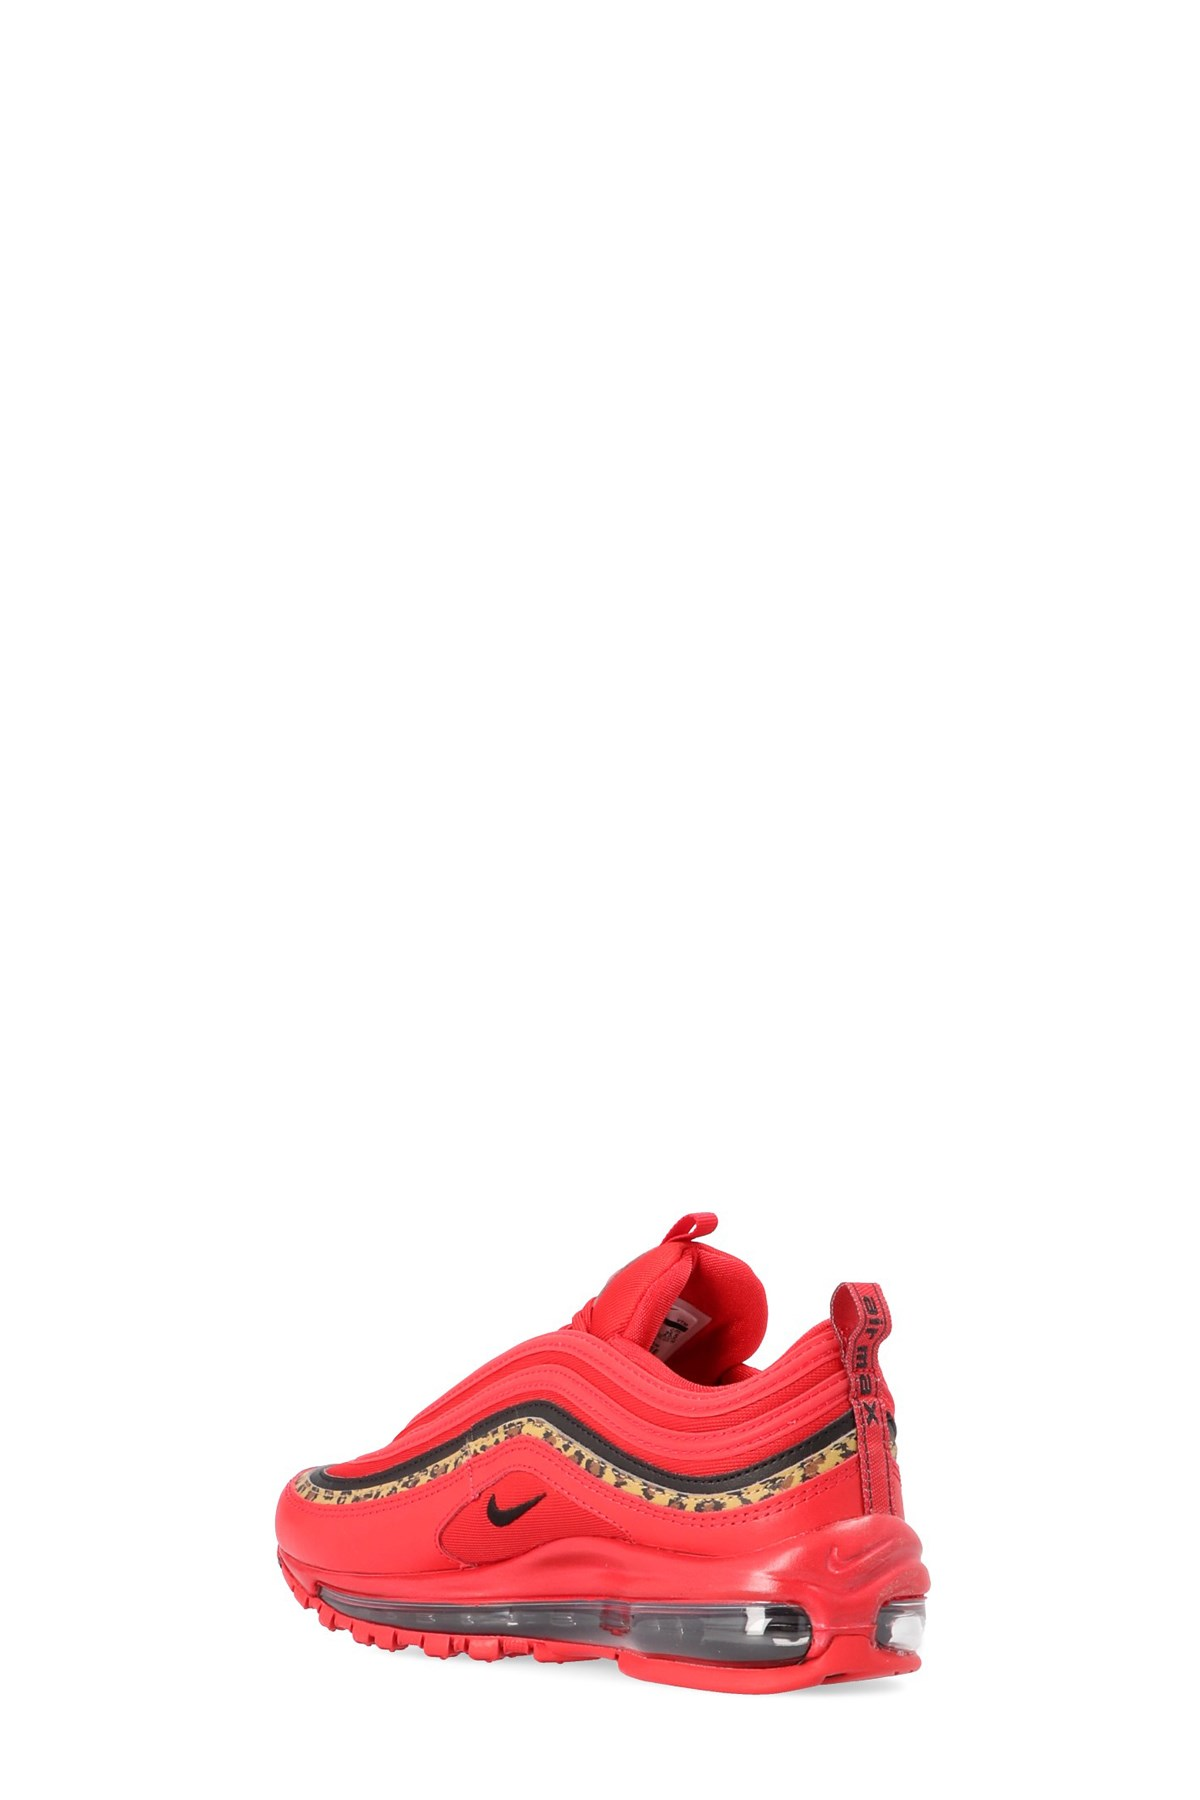 info for b3711 ef078 NIKE W air max 97 sneakers - COD. BV6113600